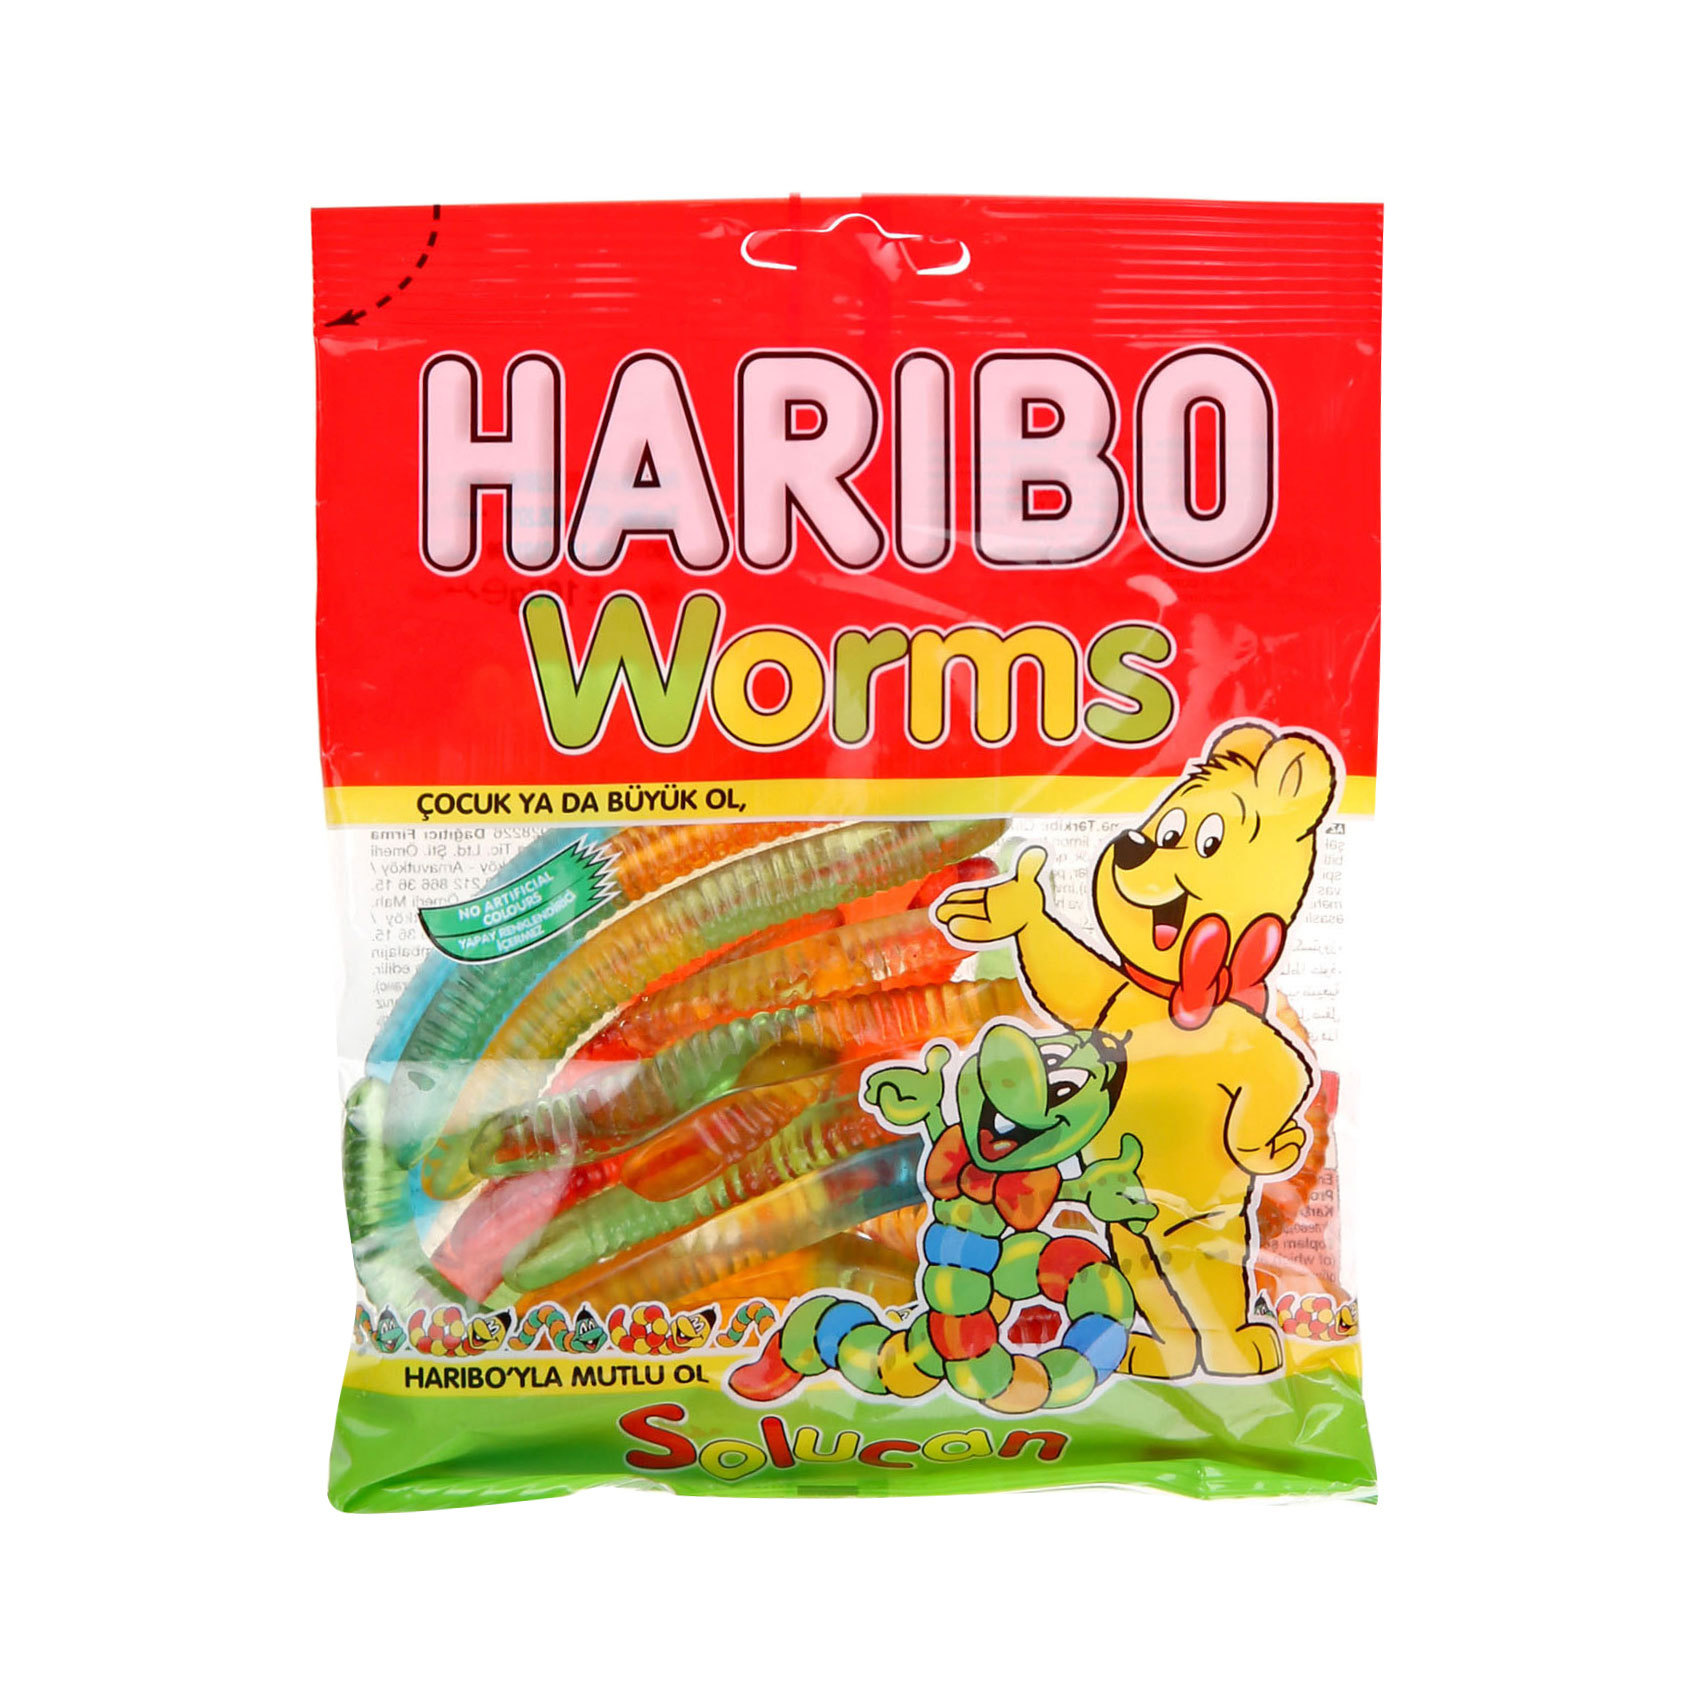 HARIBO WORMS 160G